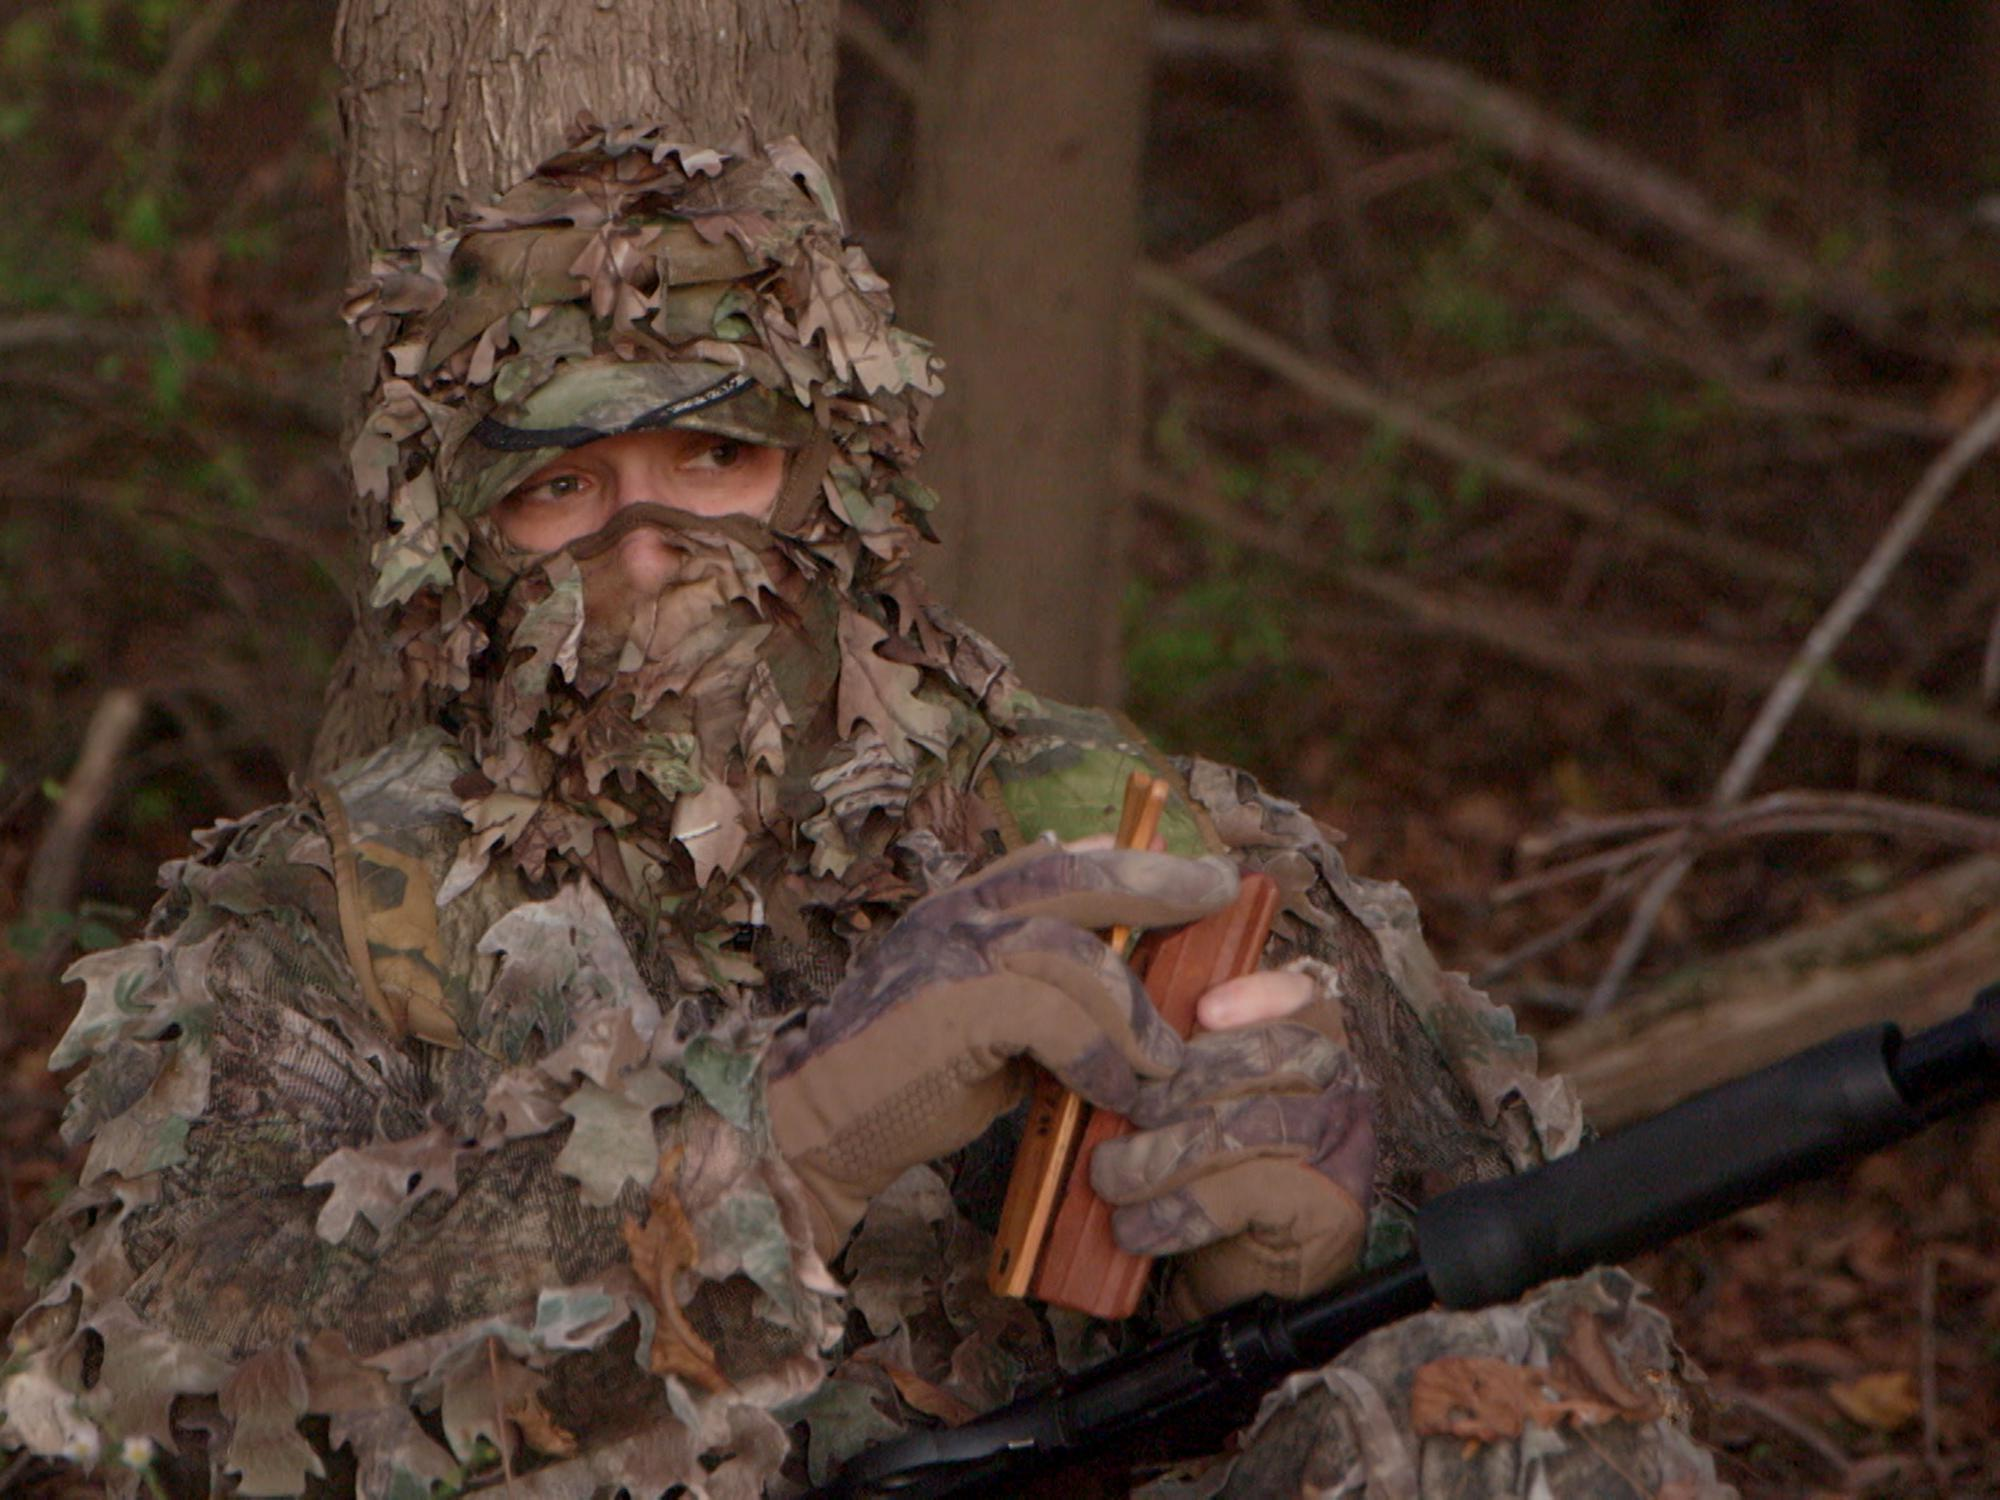 Only the eyes of a turkey hunter wearing full camouflage is visible. He is holding a wooden turkey caller.